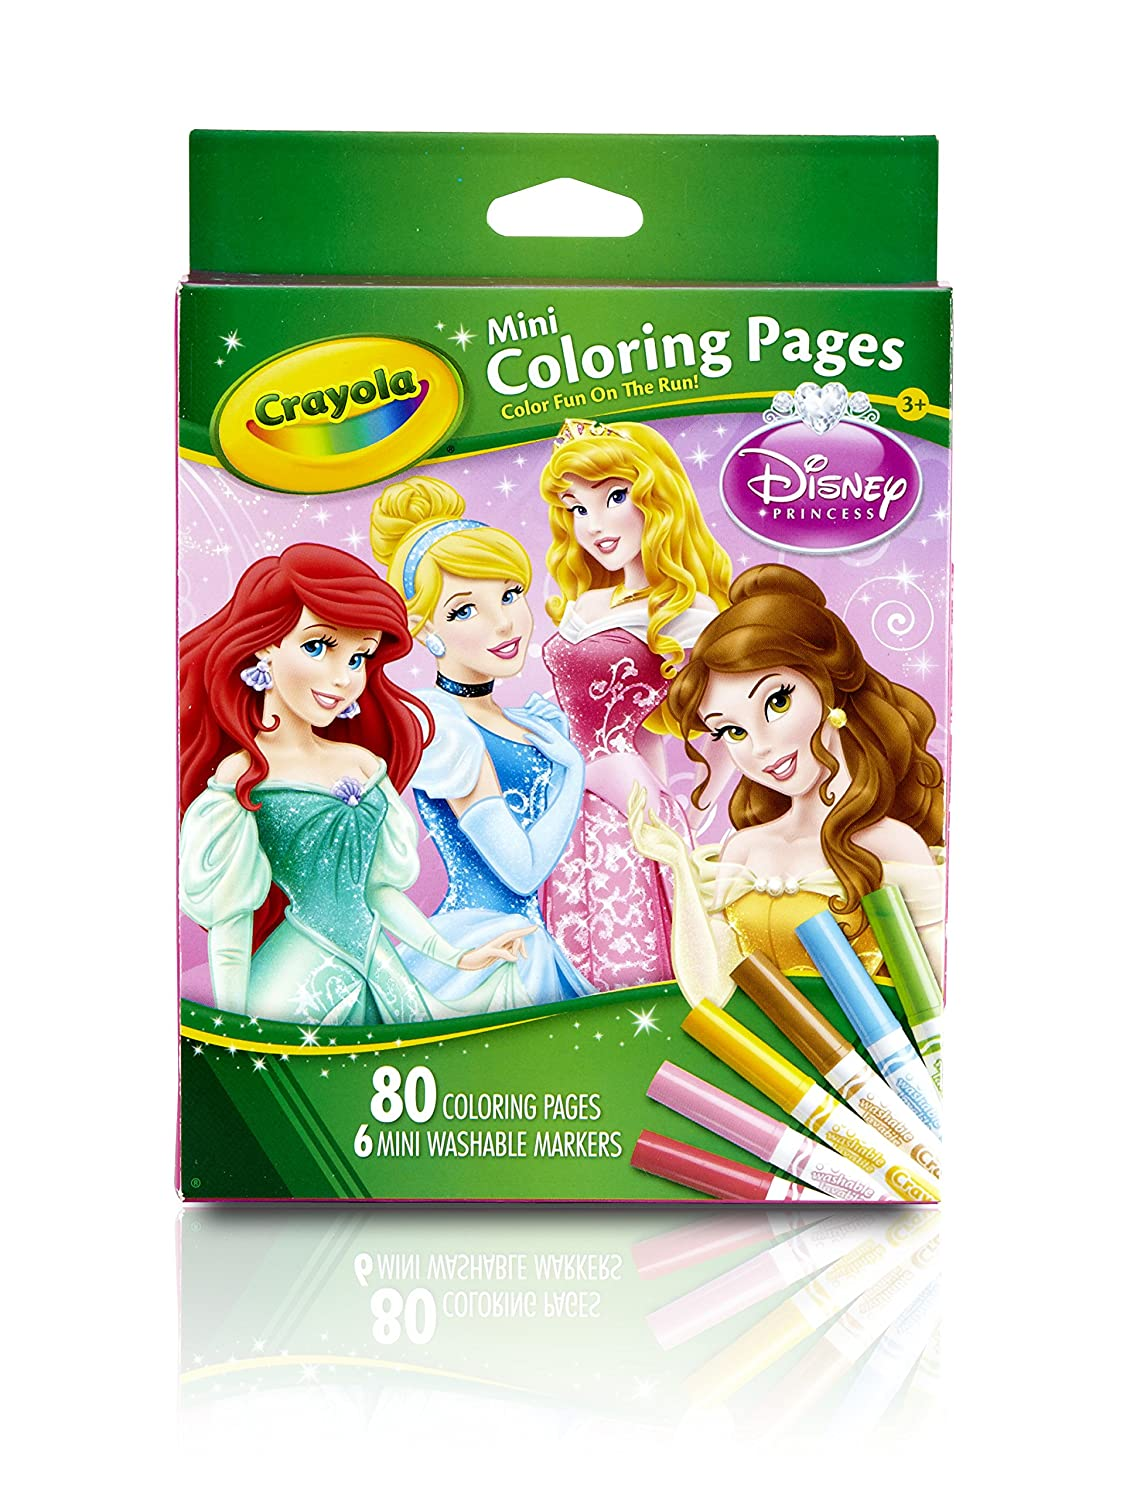 amazoncom crayola crayola mini coloring pages disney princess toy toys games - Crayola Coloring Pages